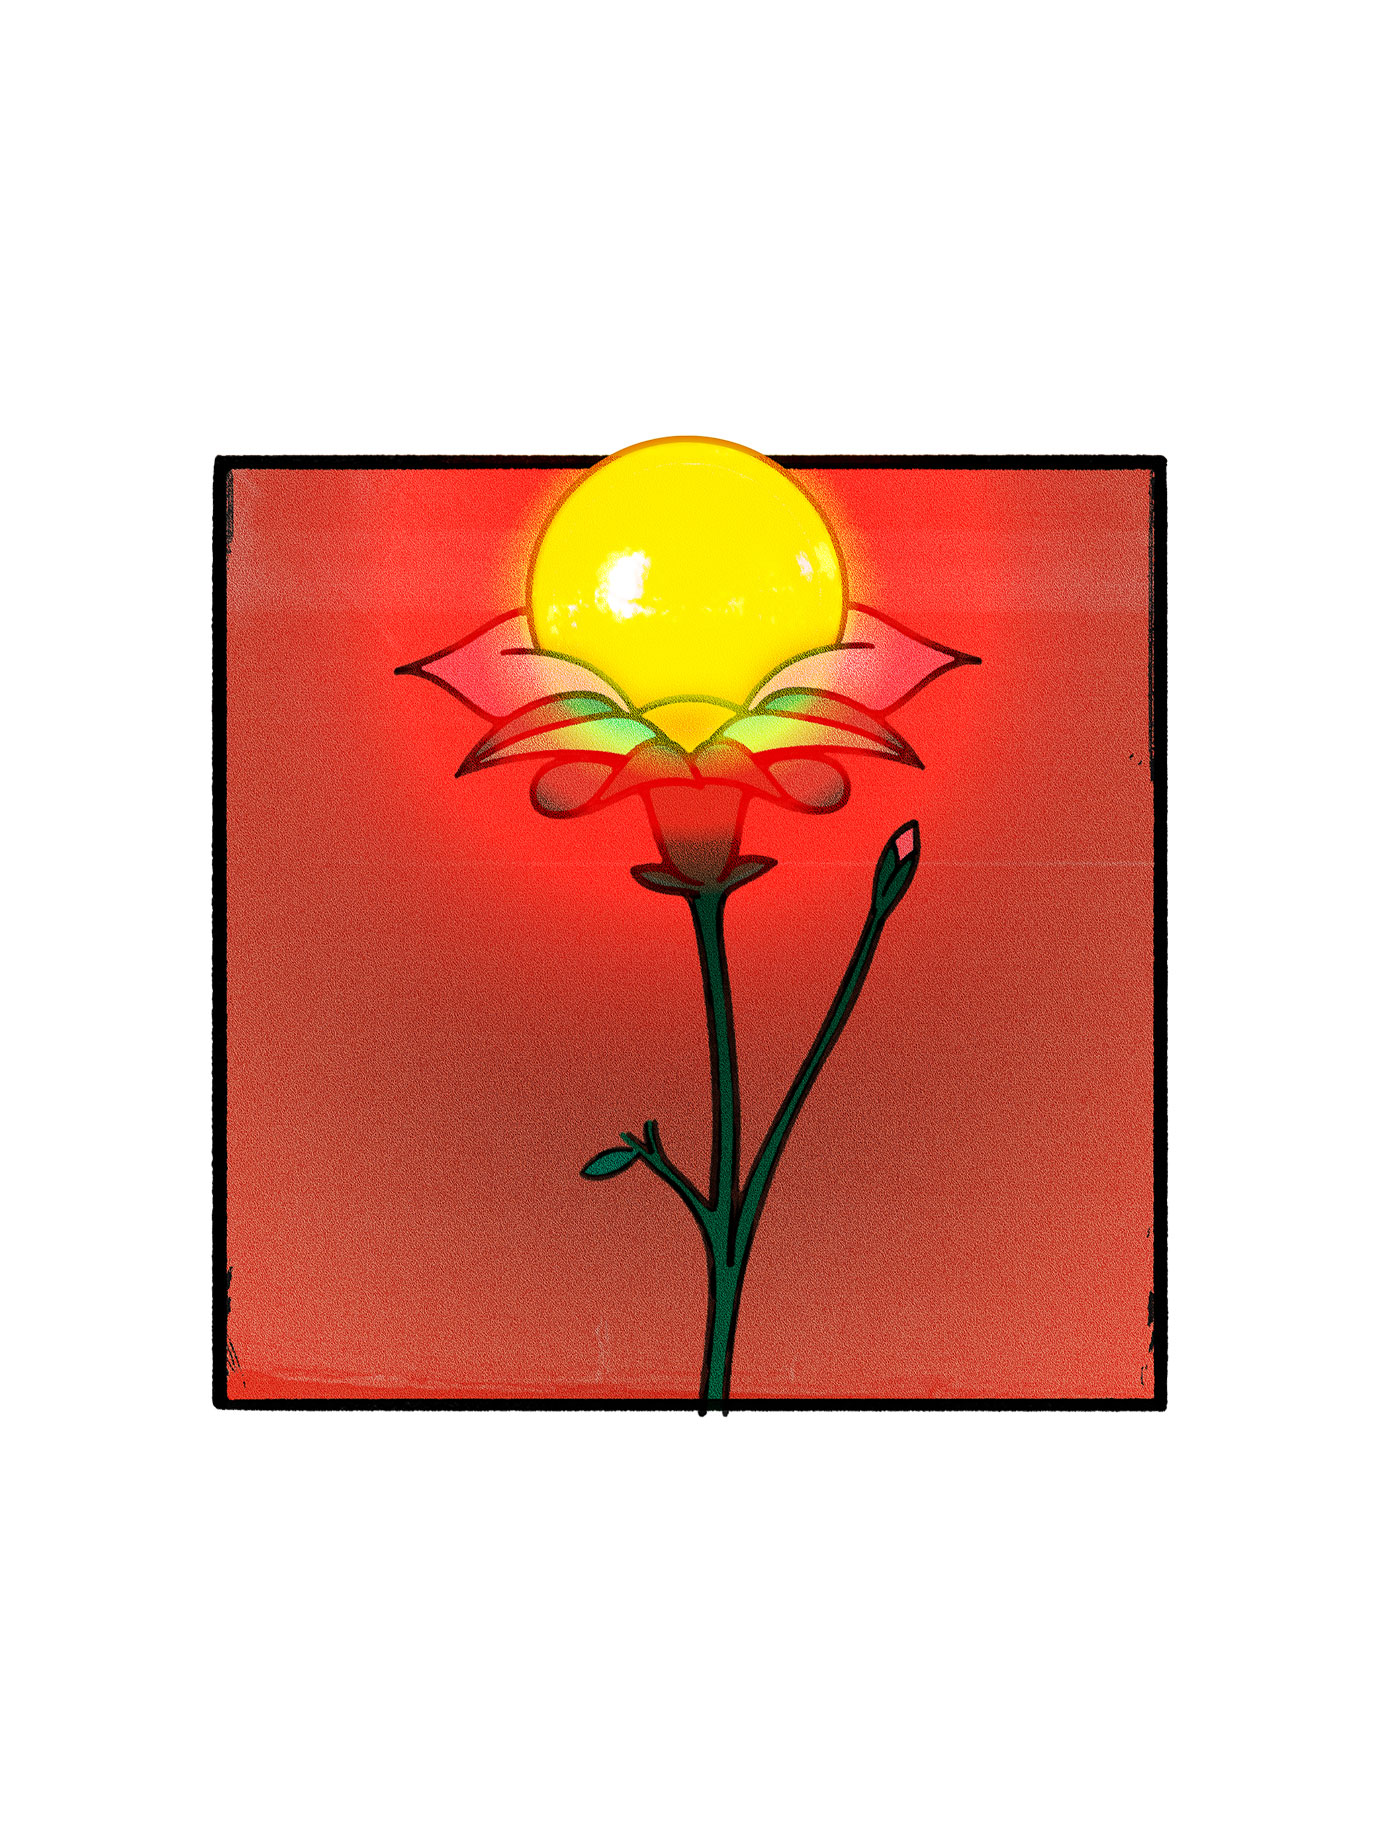 illustration of a flower with the sun at its centre.